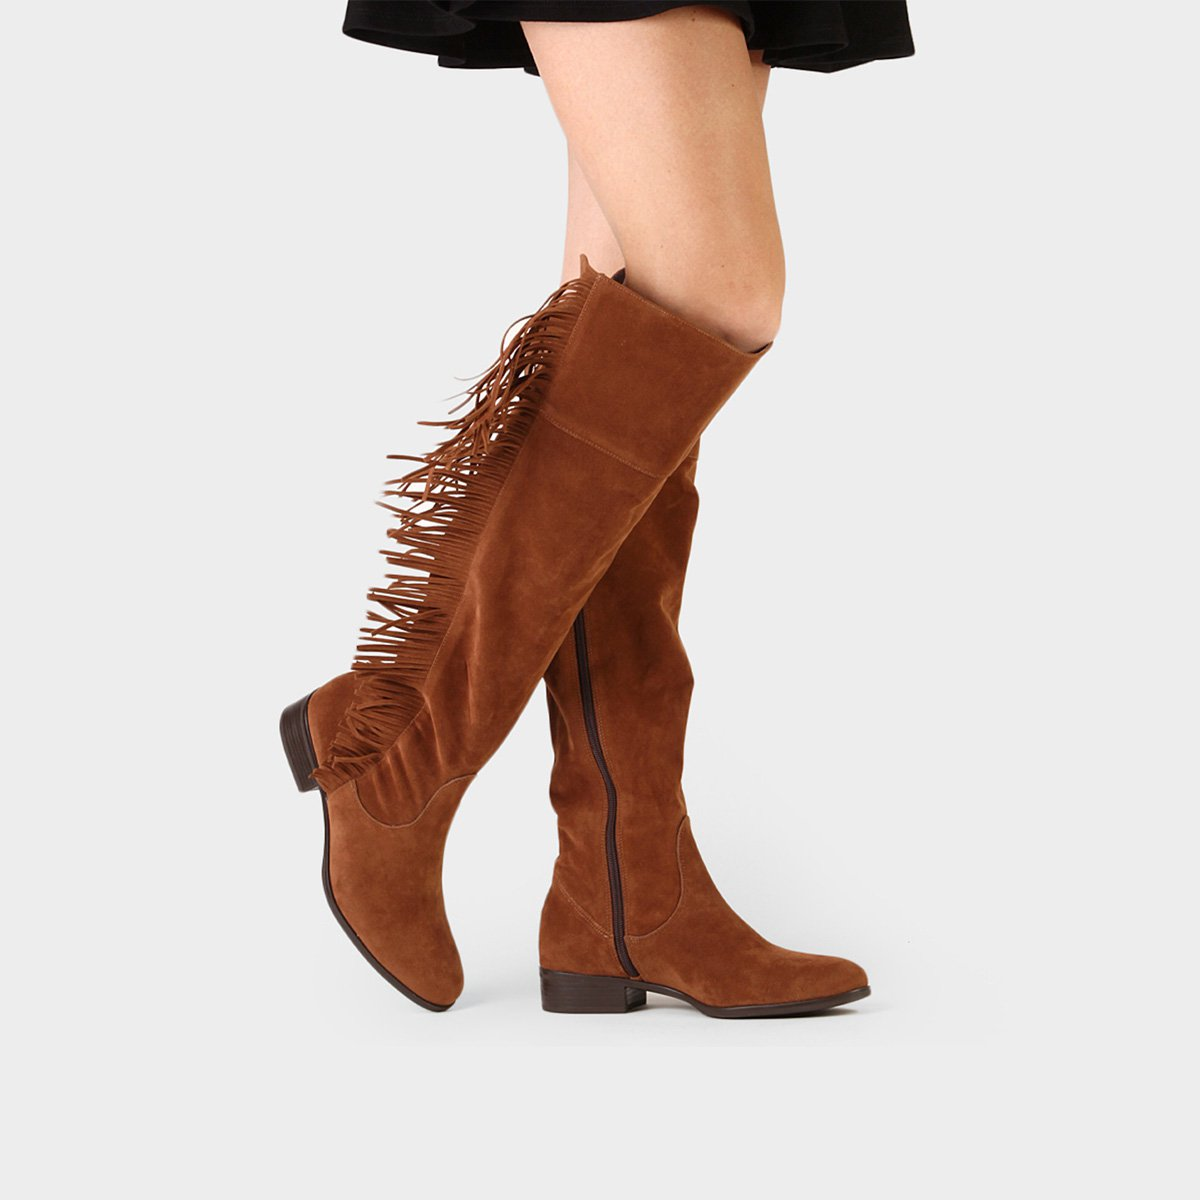 Knee Caramelo Walkabout Walkabout Caramelo the Franjas Franjas Bota Knee Bota Walkabout Over Over Over the Bota O8qxp8H